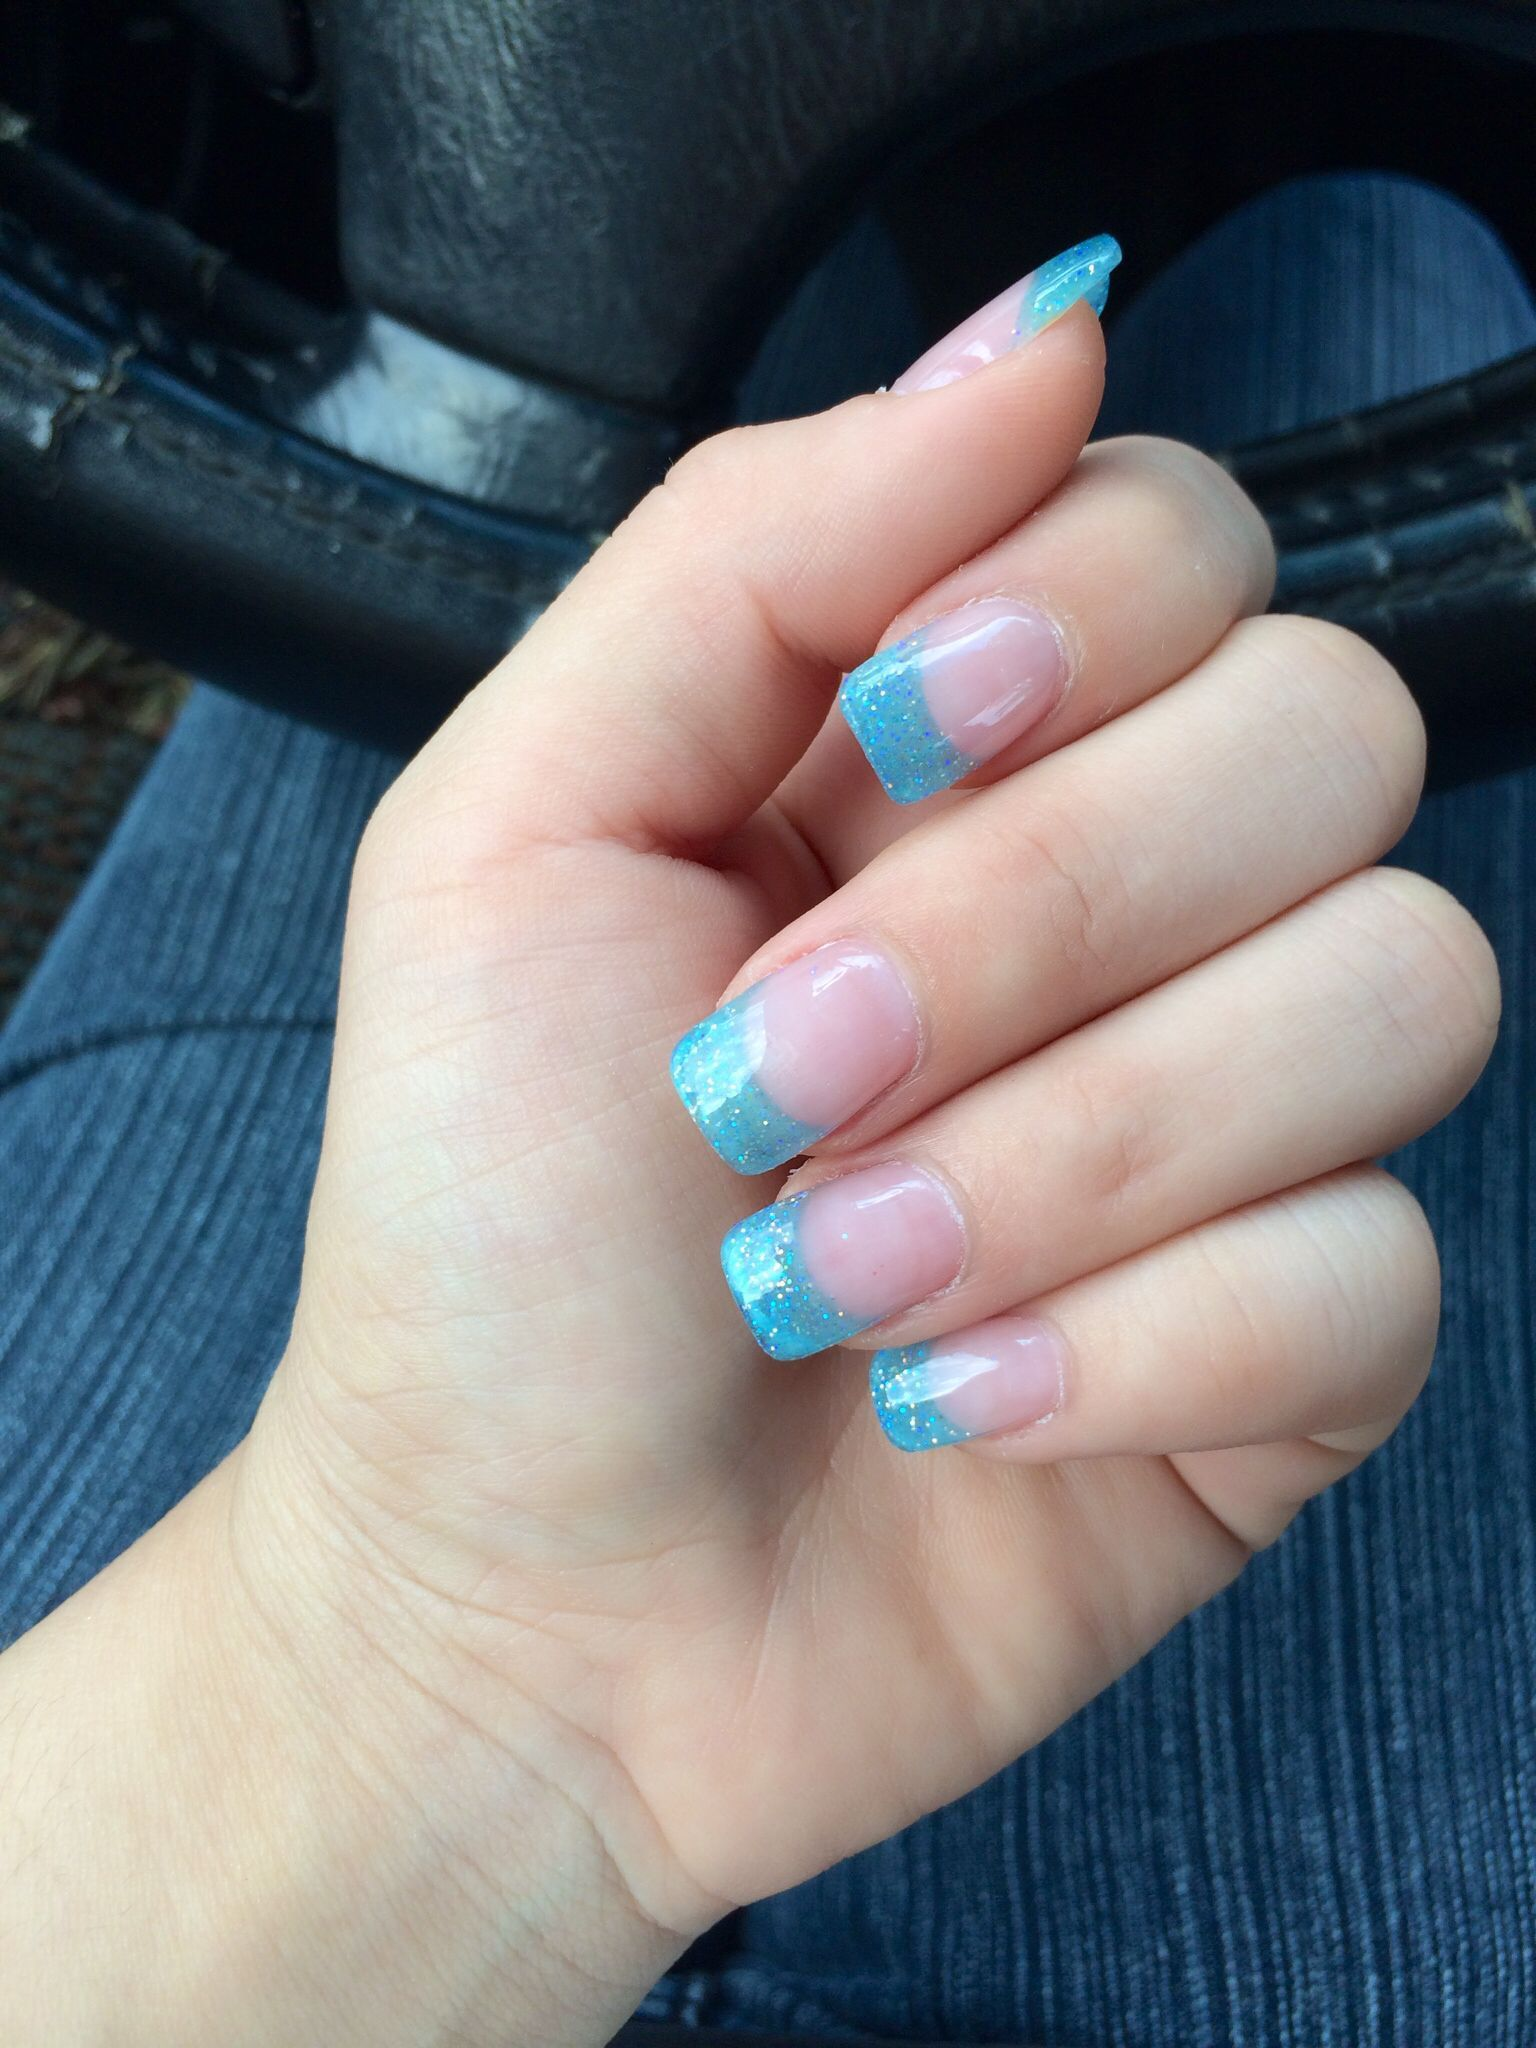 Blue Glitter Acrylic Nails French Tip Nails Acrylic Nails Glitter Light Blue Short Nails Cute French Glitter Nails Acrylic French Tip Nails French Nails